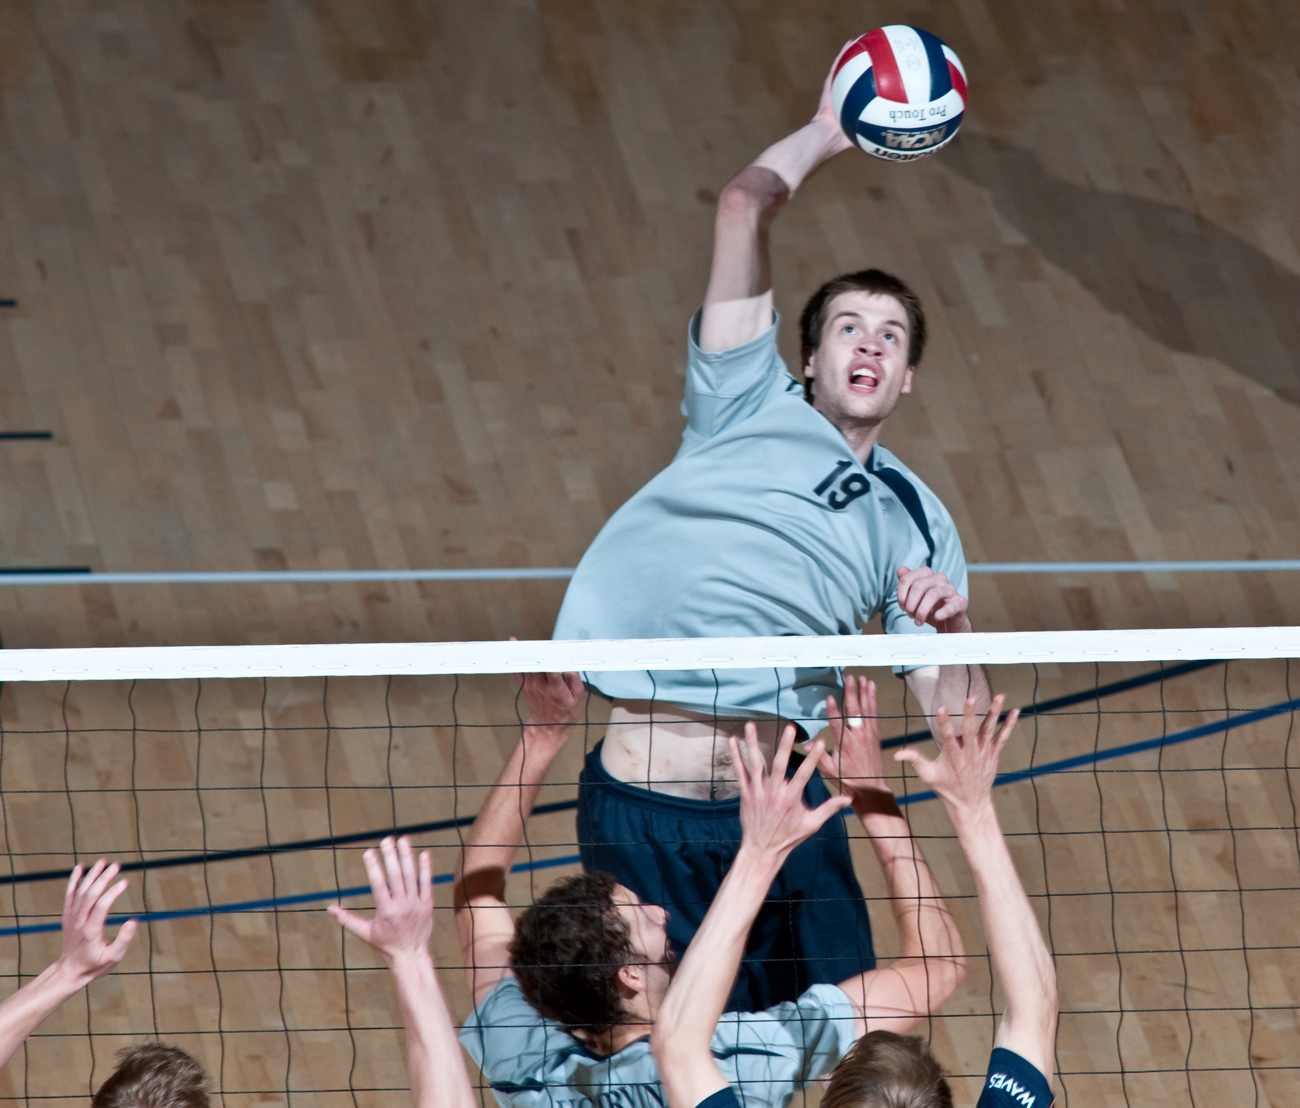 04-11-09_Mes_VBall_Roeder_67